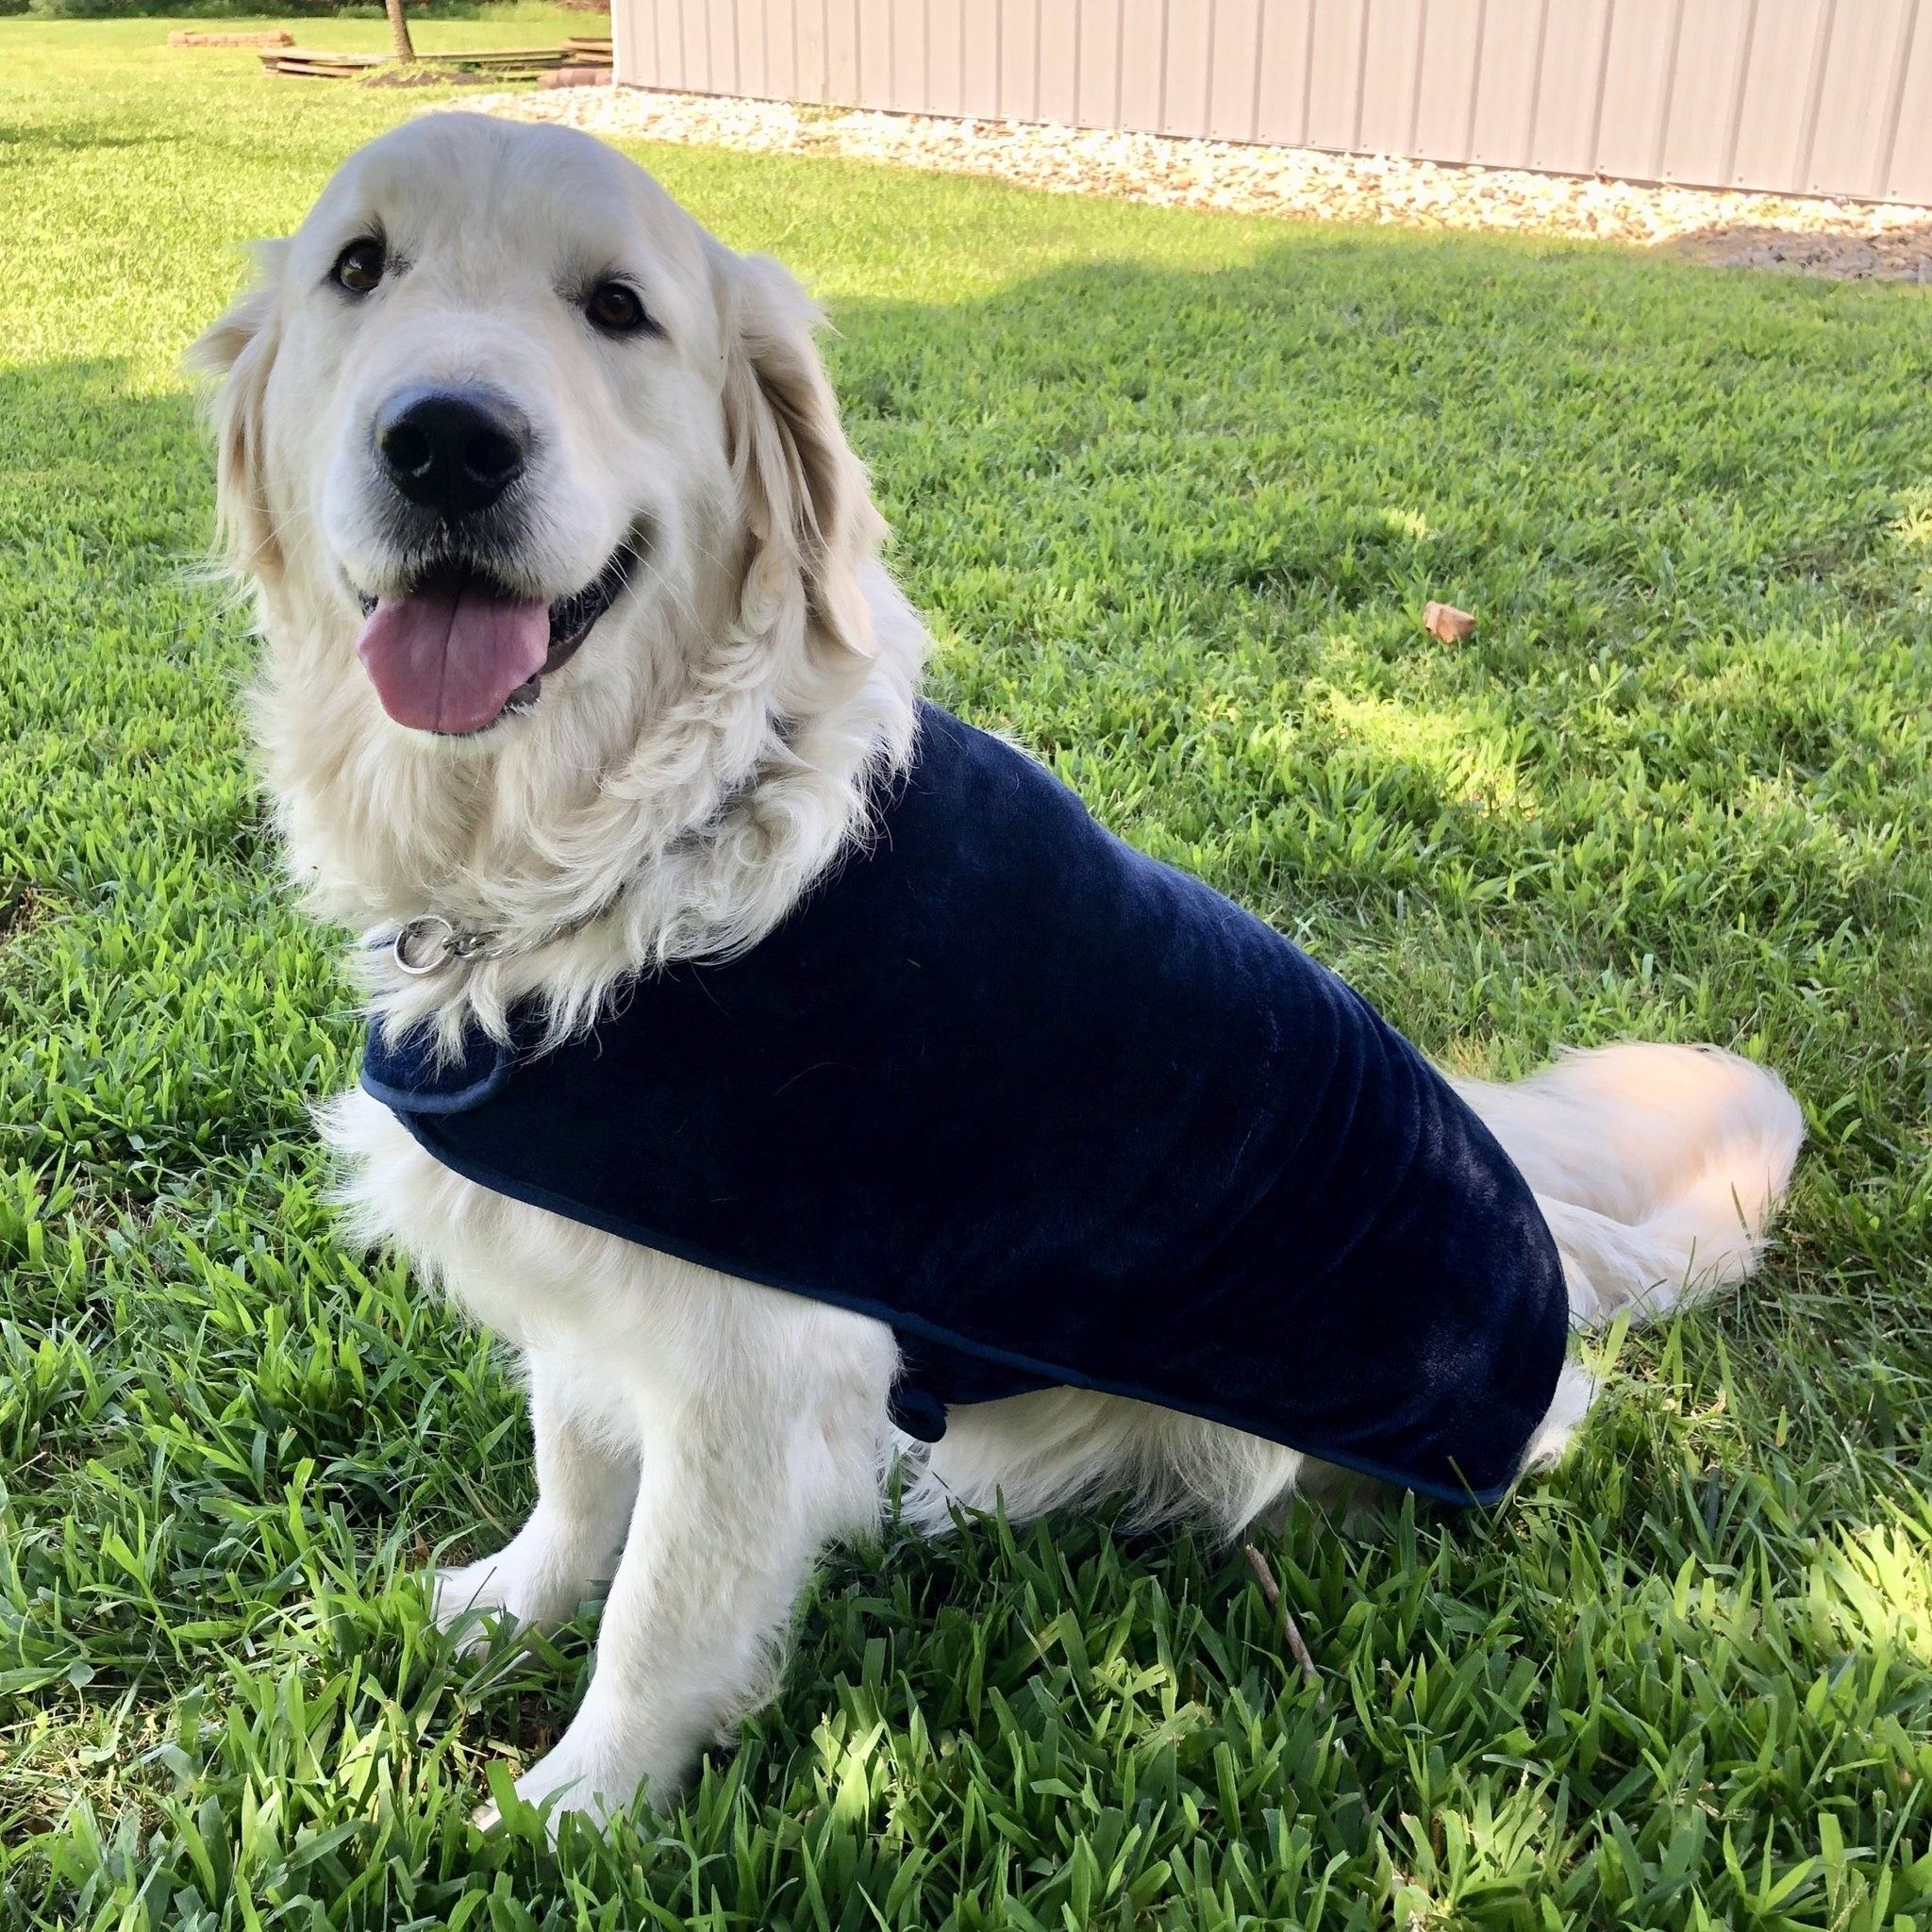 Large golden retriever wearing the blue poncho